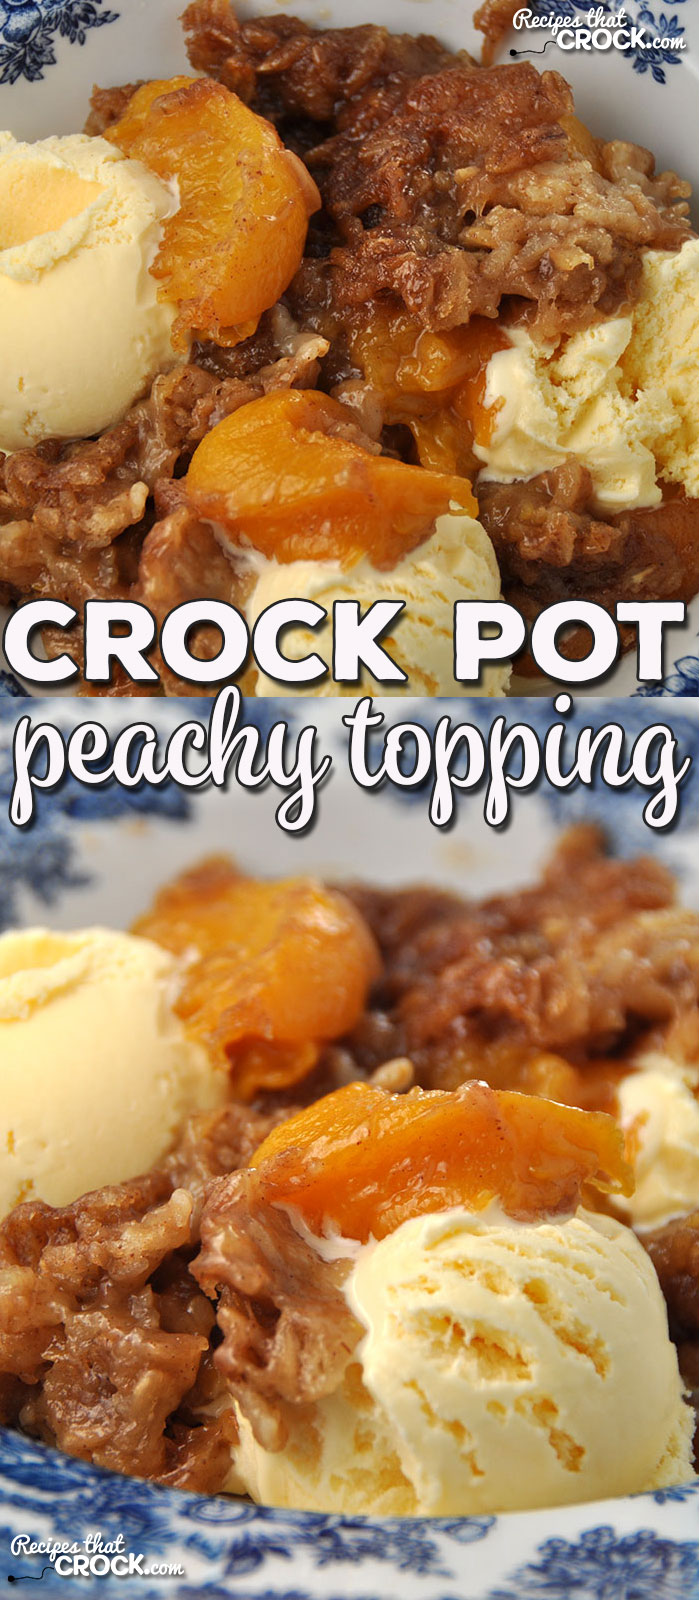 No matter the season, this Crock Pot Peachy Topping is going to satisfy your sweet tooth! You can make it with fresh, frozen or canned peaches!